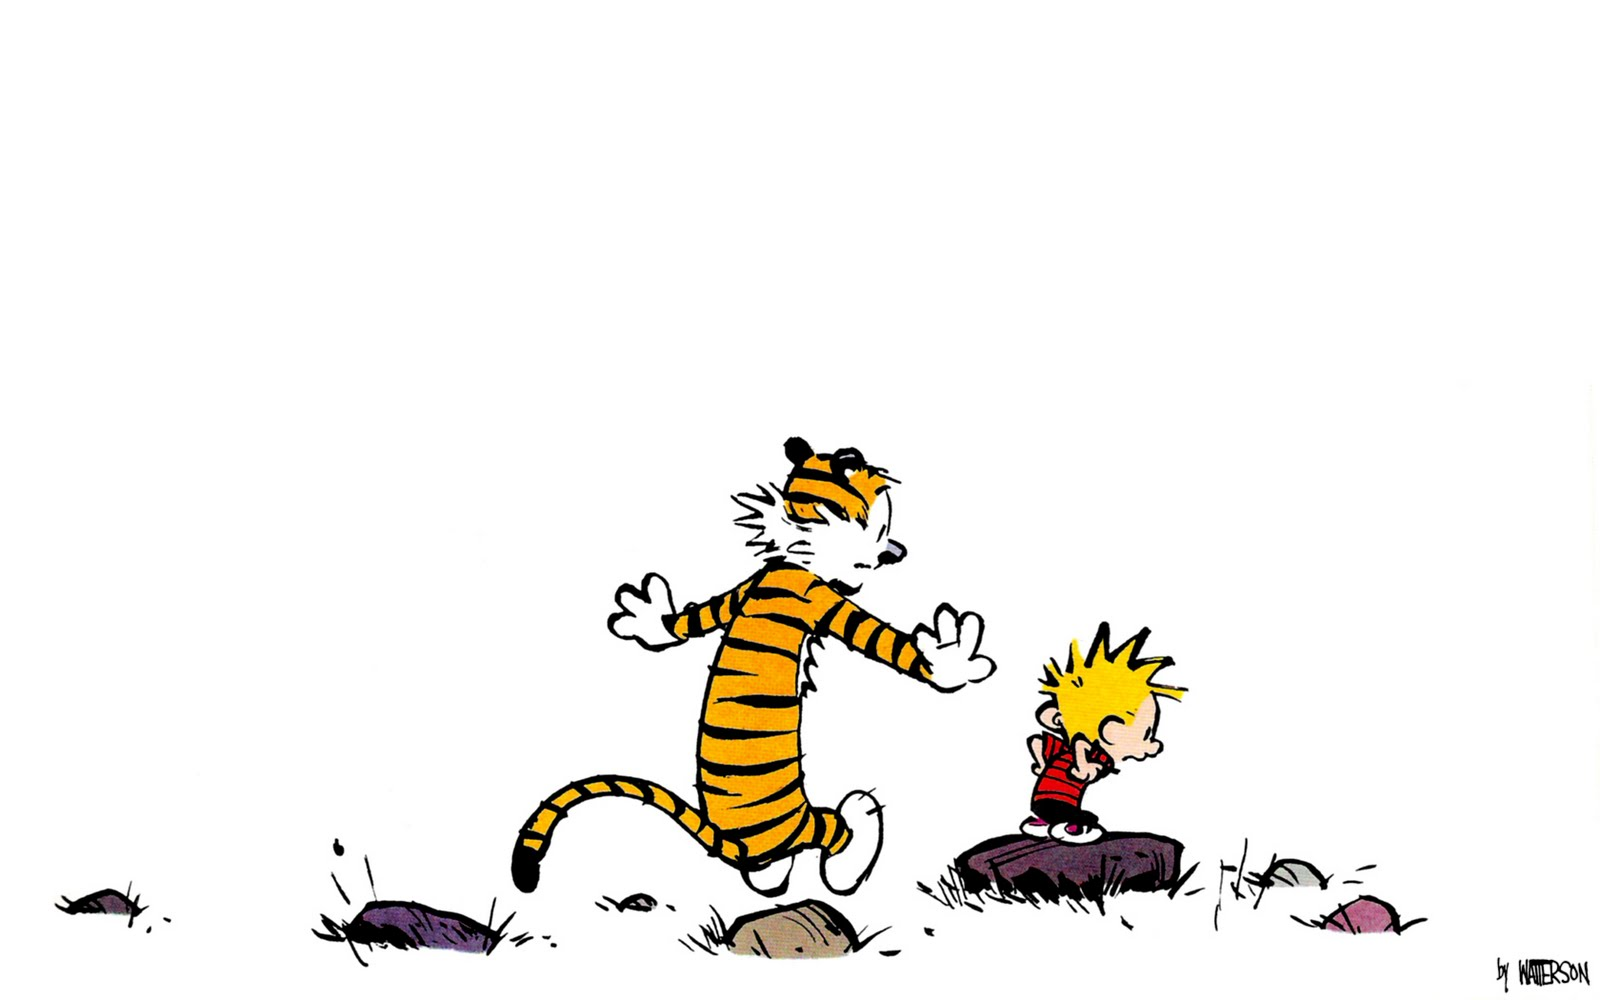 ... plus computer related articles: Calvin and Hobbes Collection